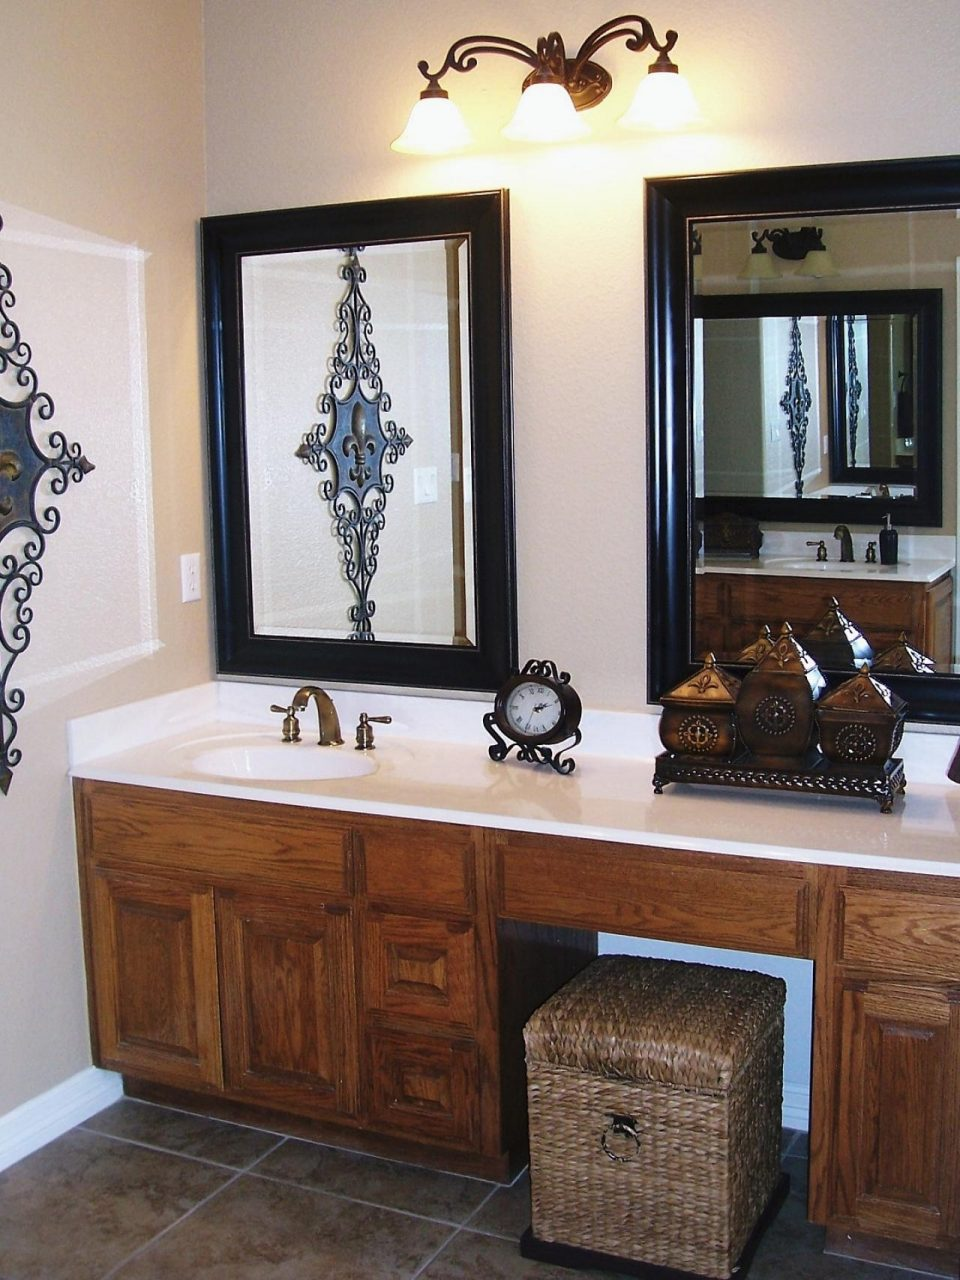 Types Of Vanity Mirrors Darlanefurniture